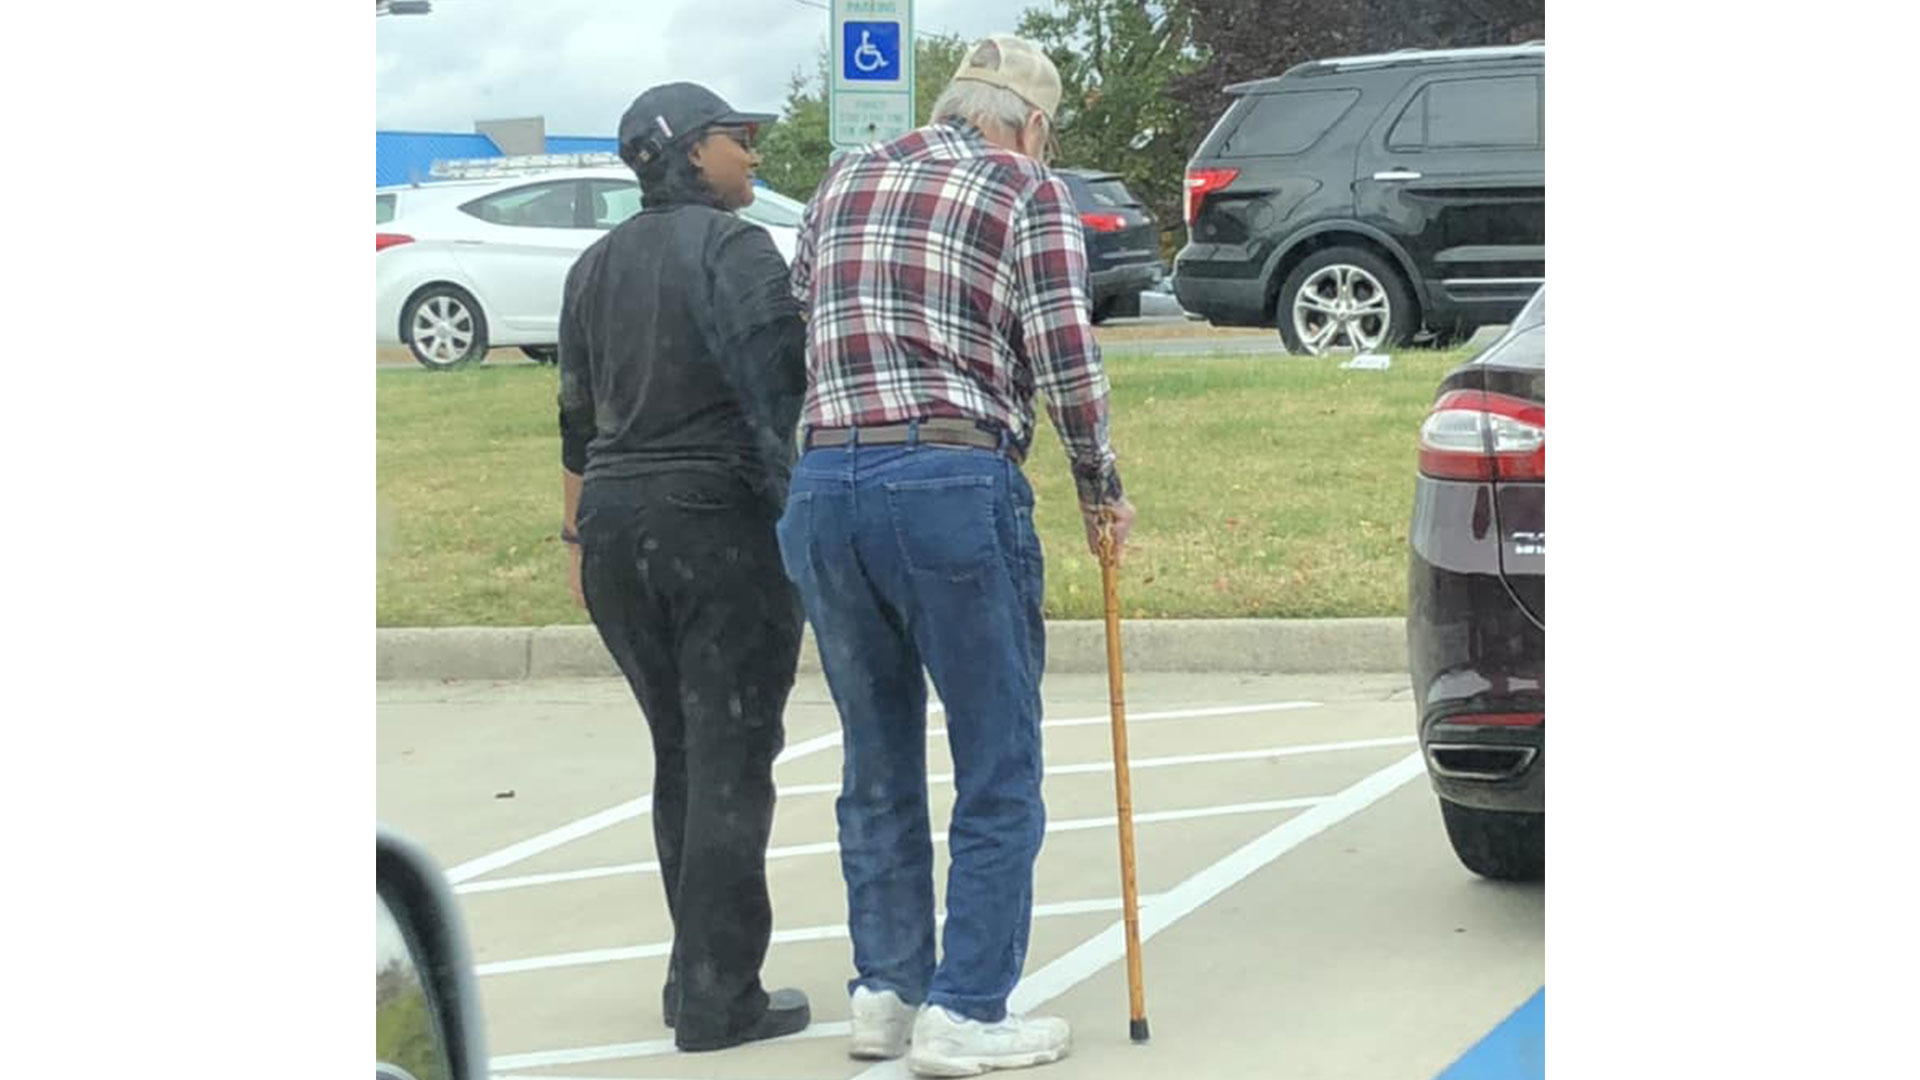 Burger King Employee Helping Man